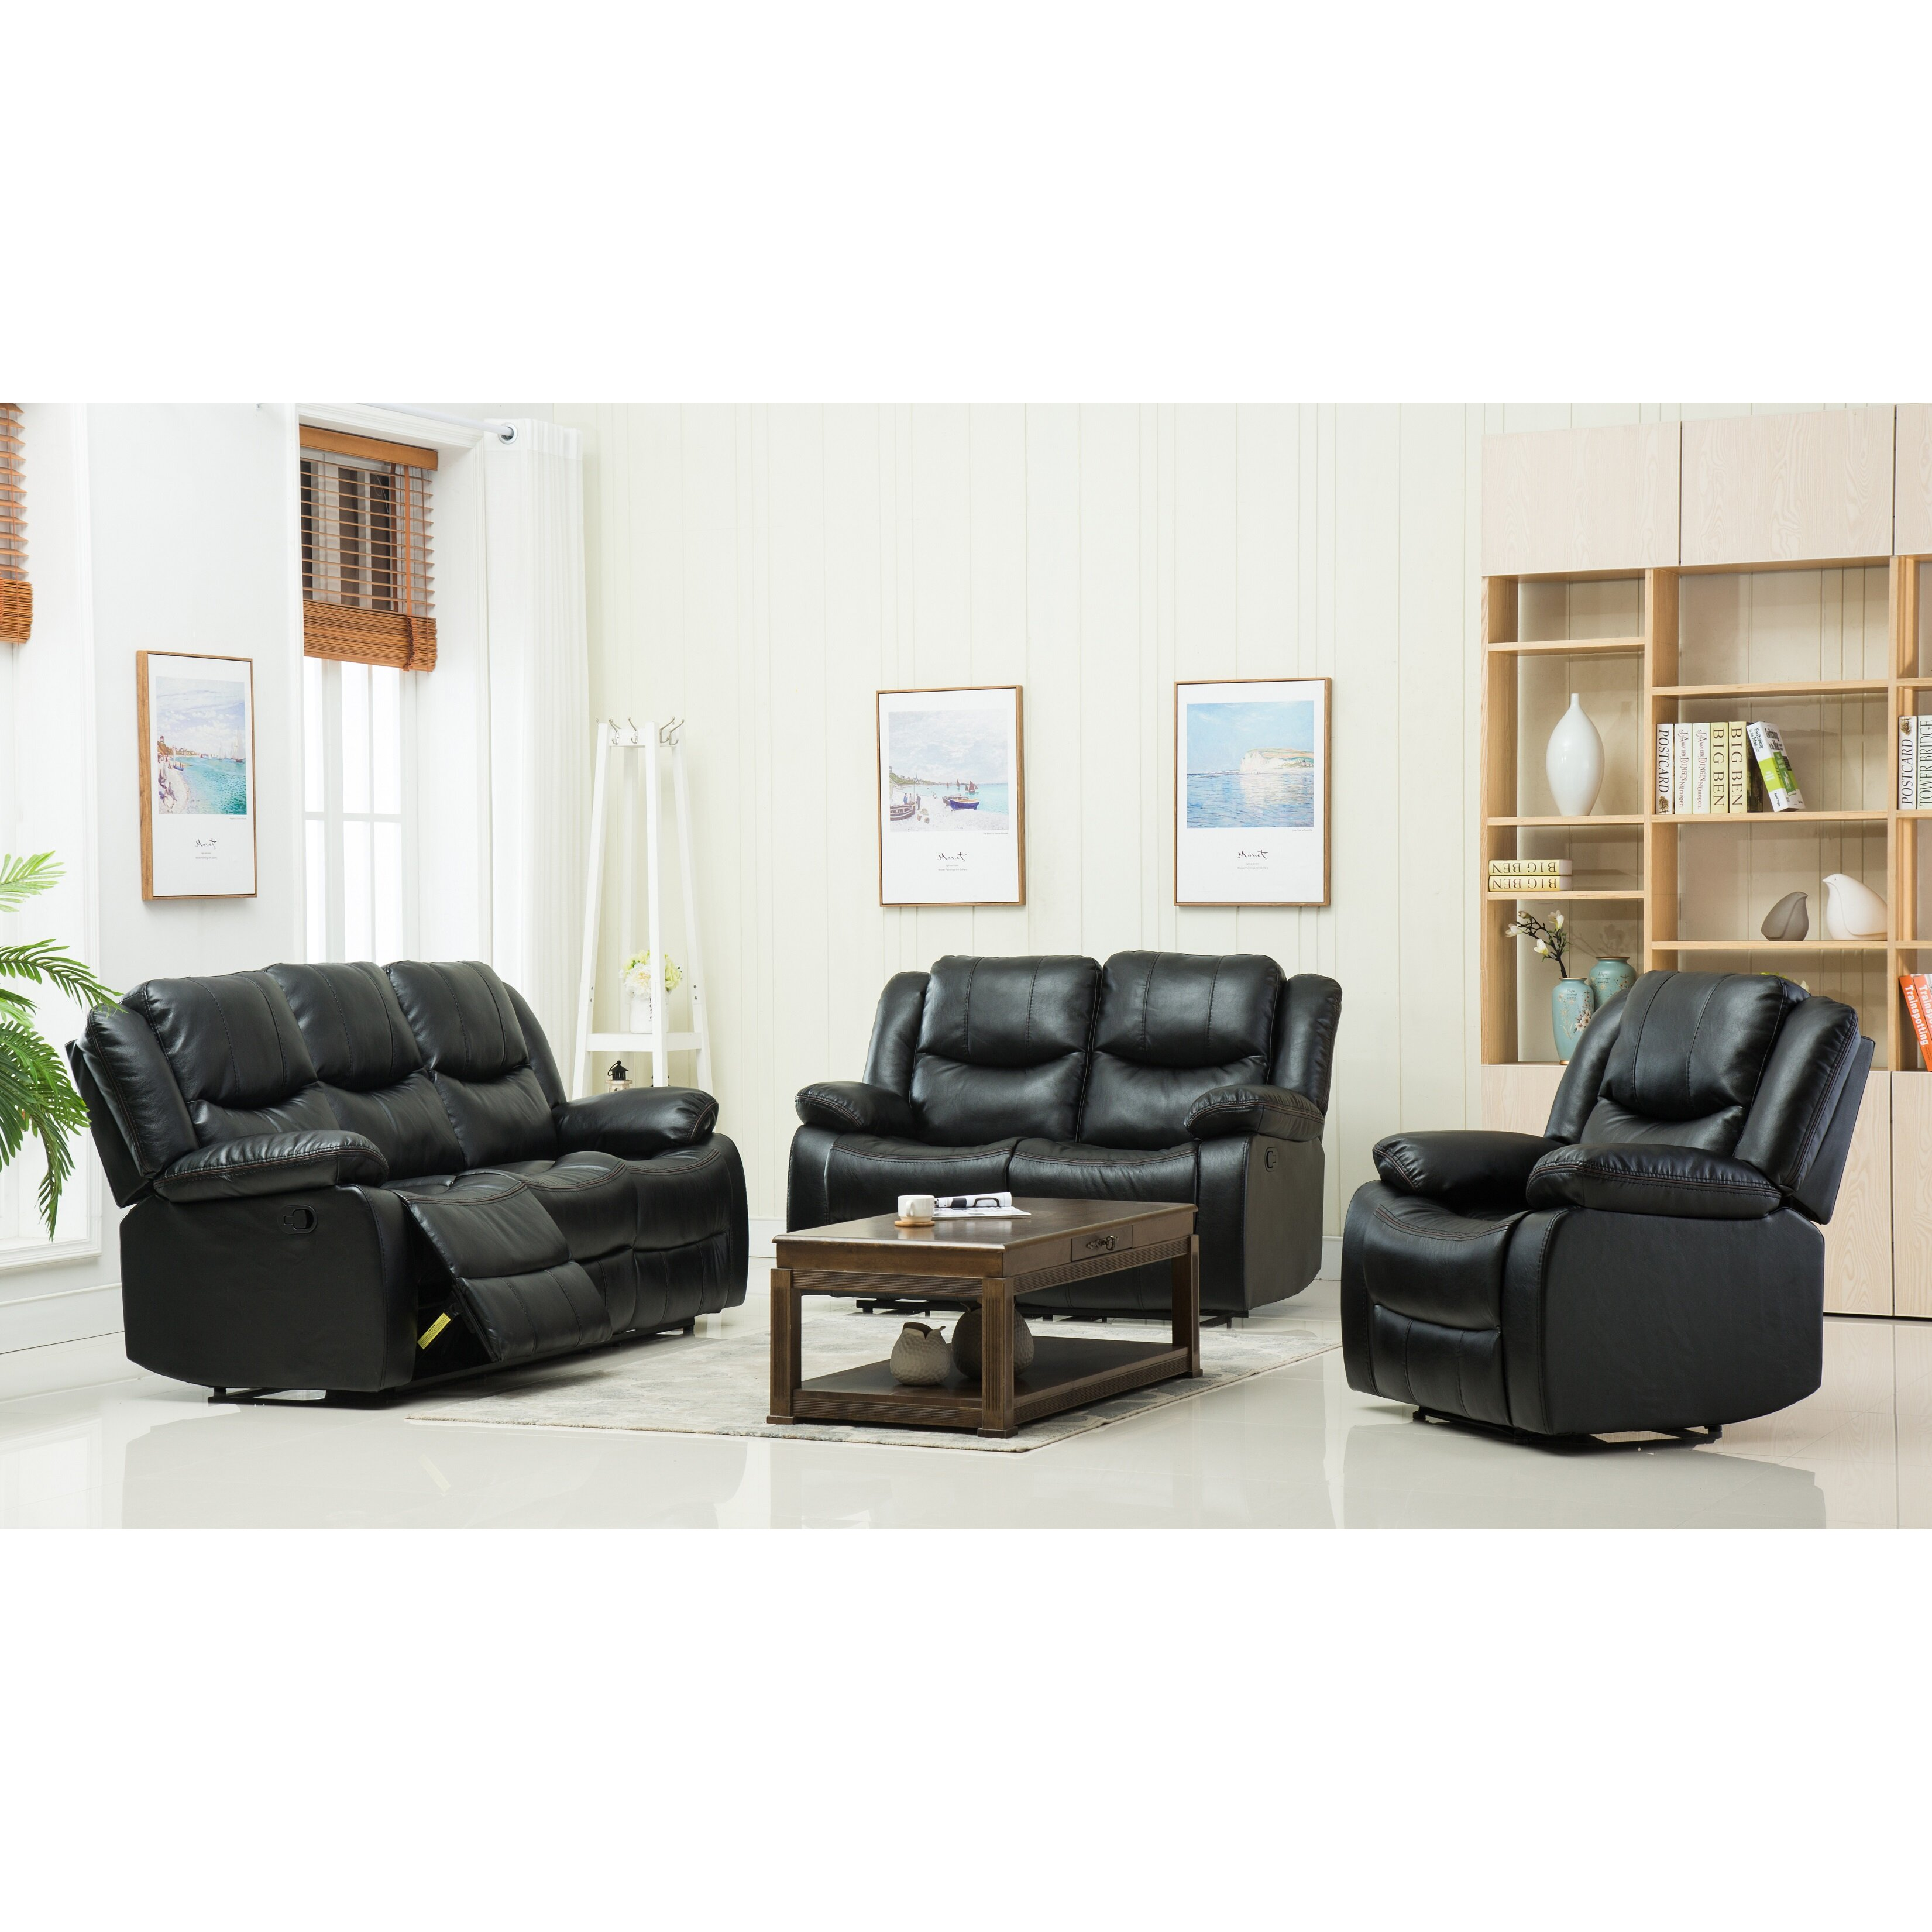 Container 3 piece living room set wayfair for 3 piece living room set